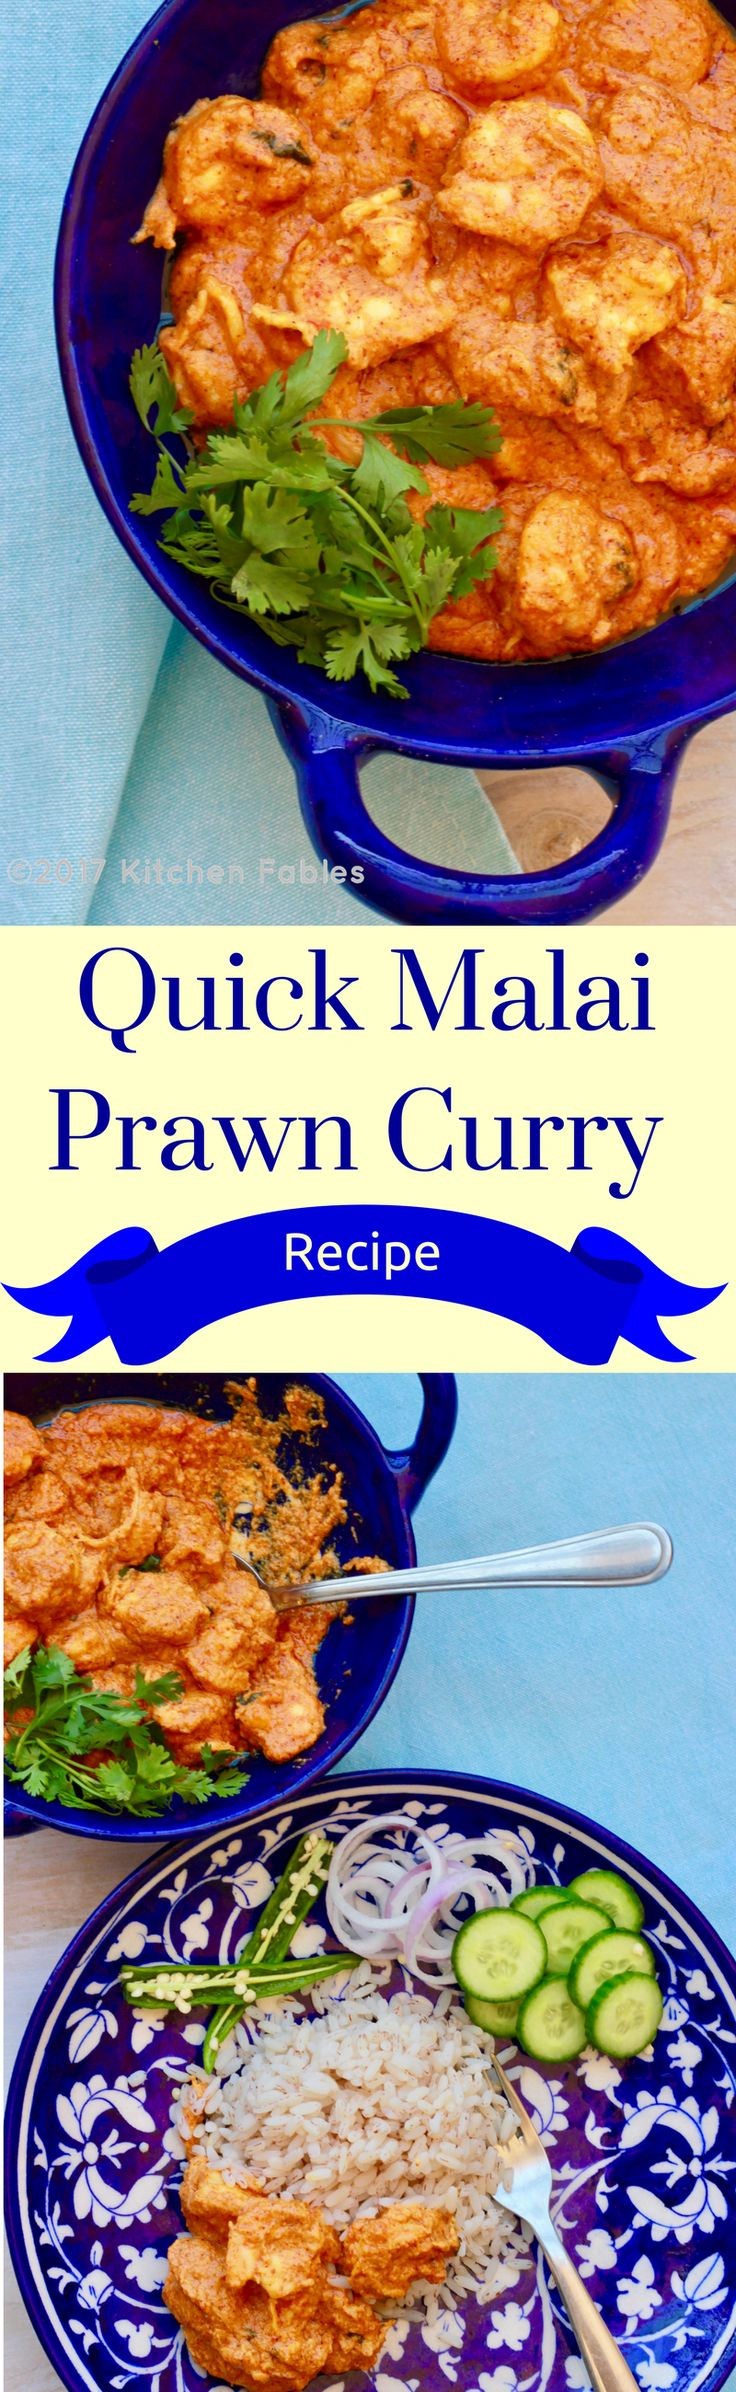 An easy & healthy recipe of Quick Malai Prawn Curry made in less than 30 minutes with just 7 Ingredients. via @Kitchen Fables